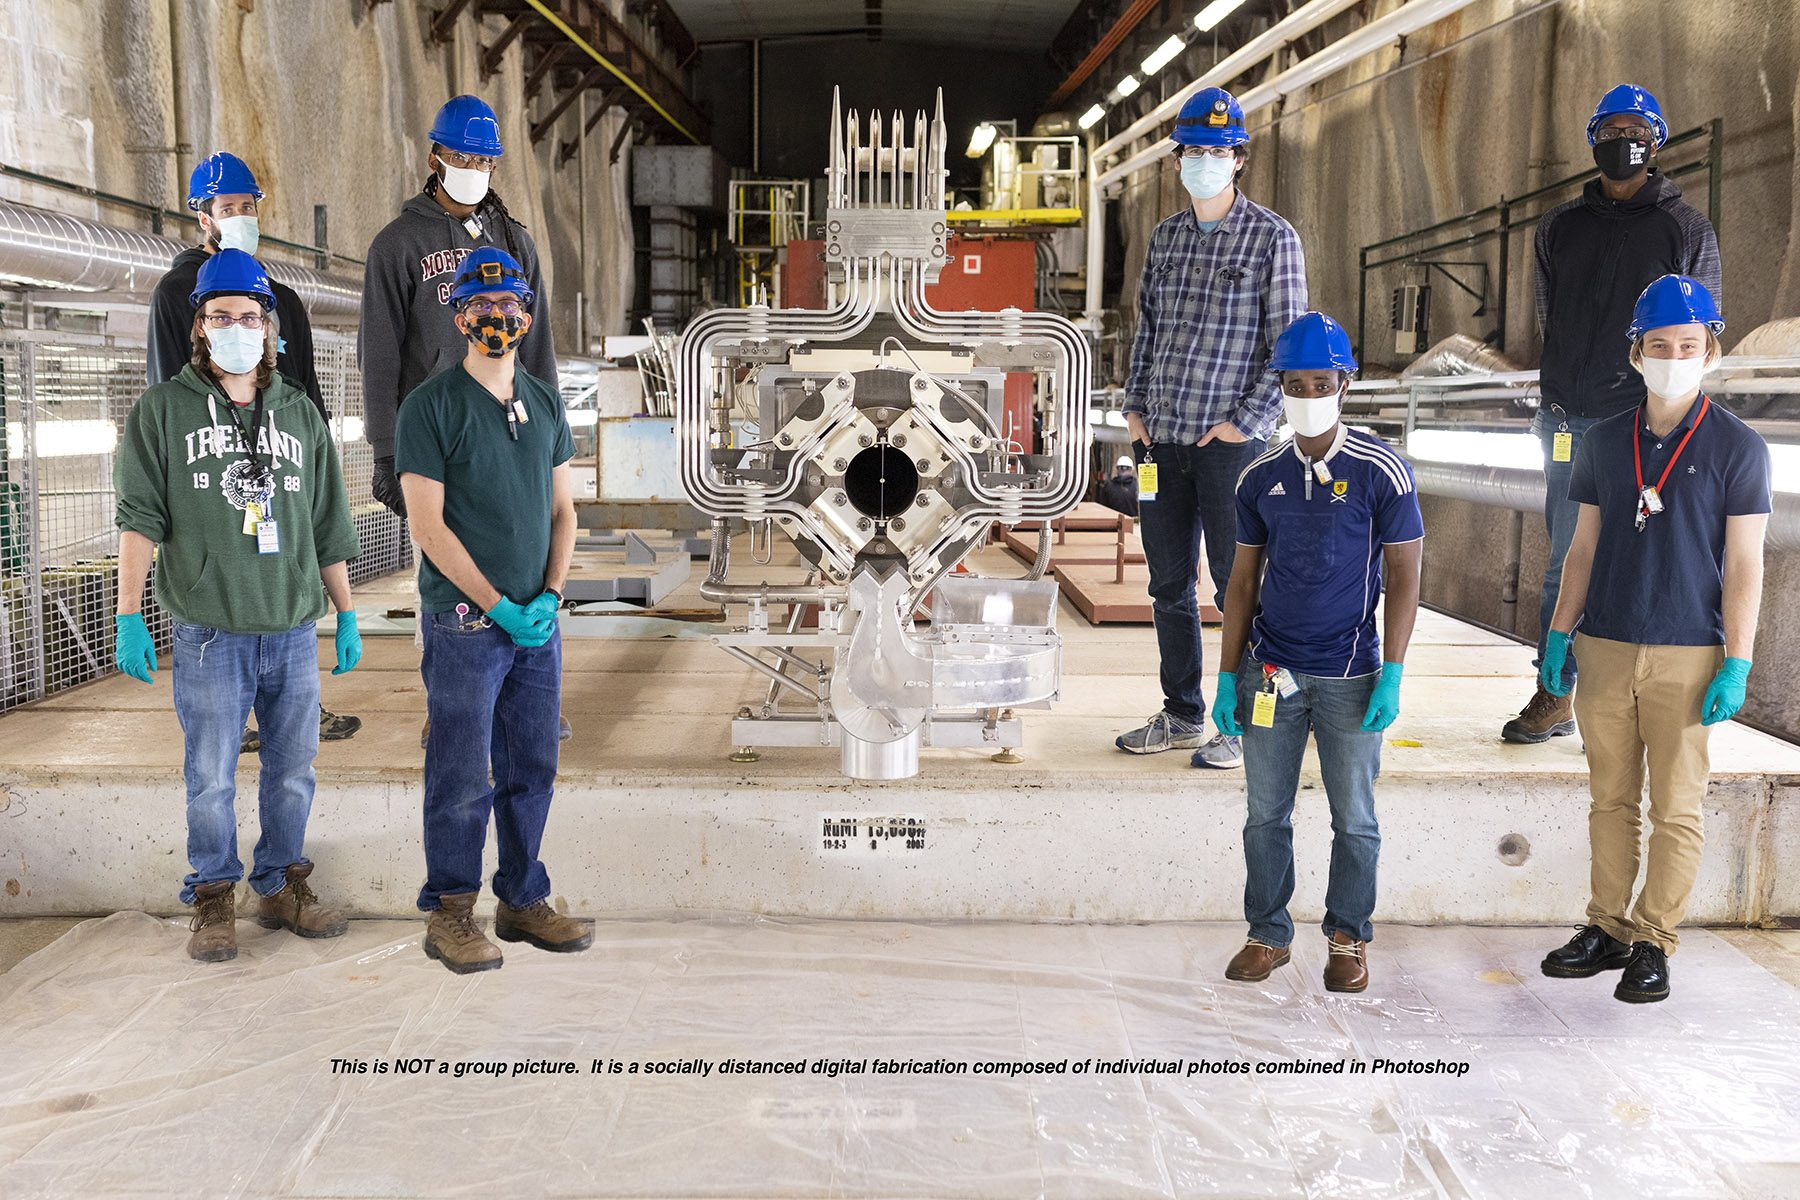 """Eight people in masks that cover the lower halves of their faces stand in blue hard hats in two rows of four beside a silver piece of equipment in a construction-looking area of wood-looking platform and clear plastic tarp. Text along the photo says """"This is NOT a group picture. It is a socially-distanced digital fabrication composed of individual photos combined in Photoshop."""""""